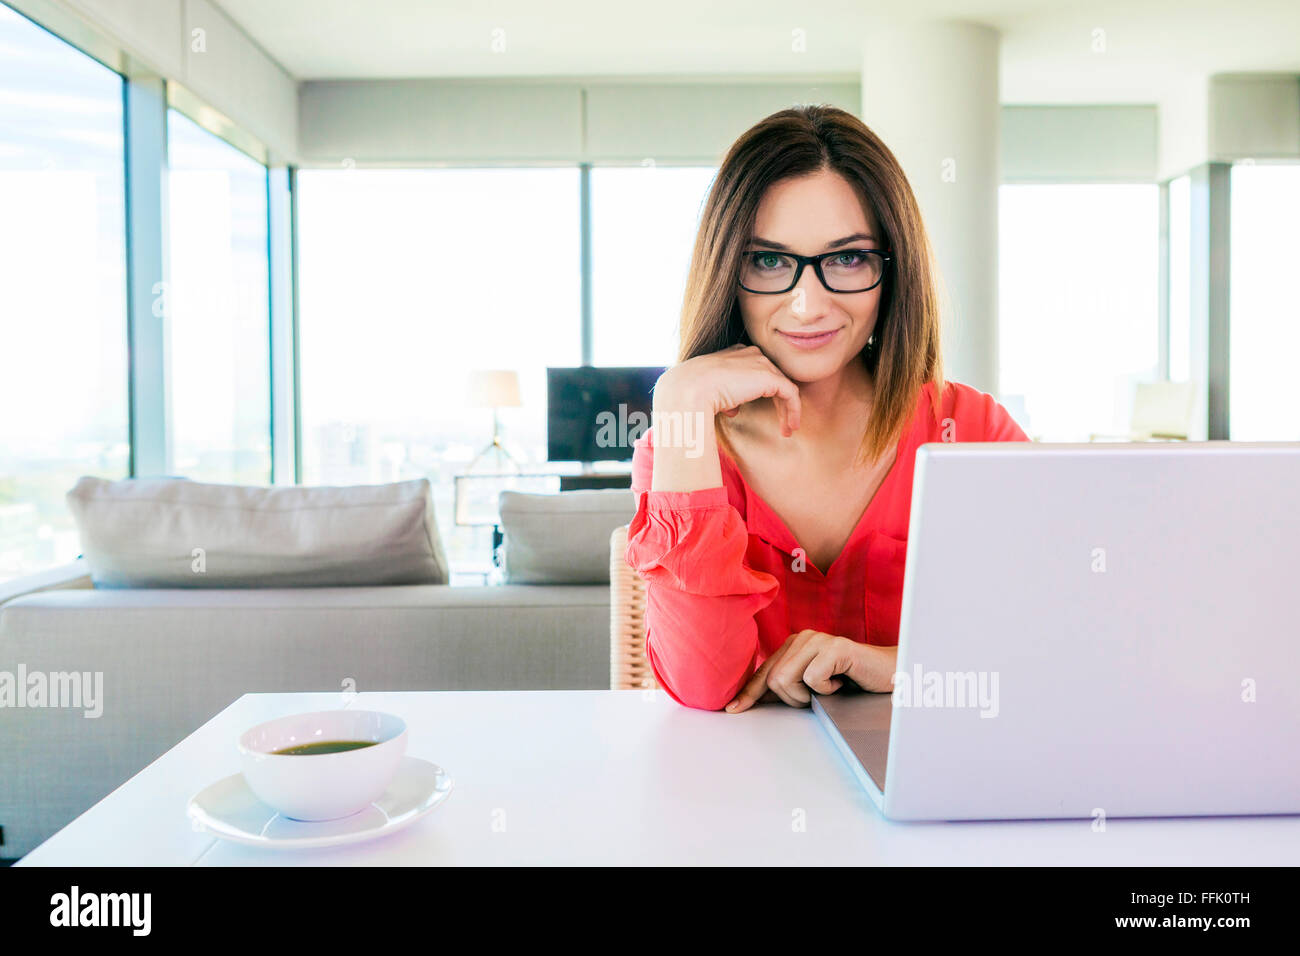 Woman in apartment using laptop computer - Stock Image